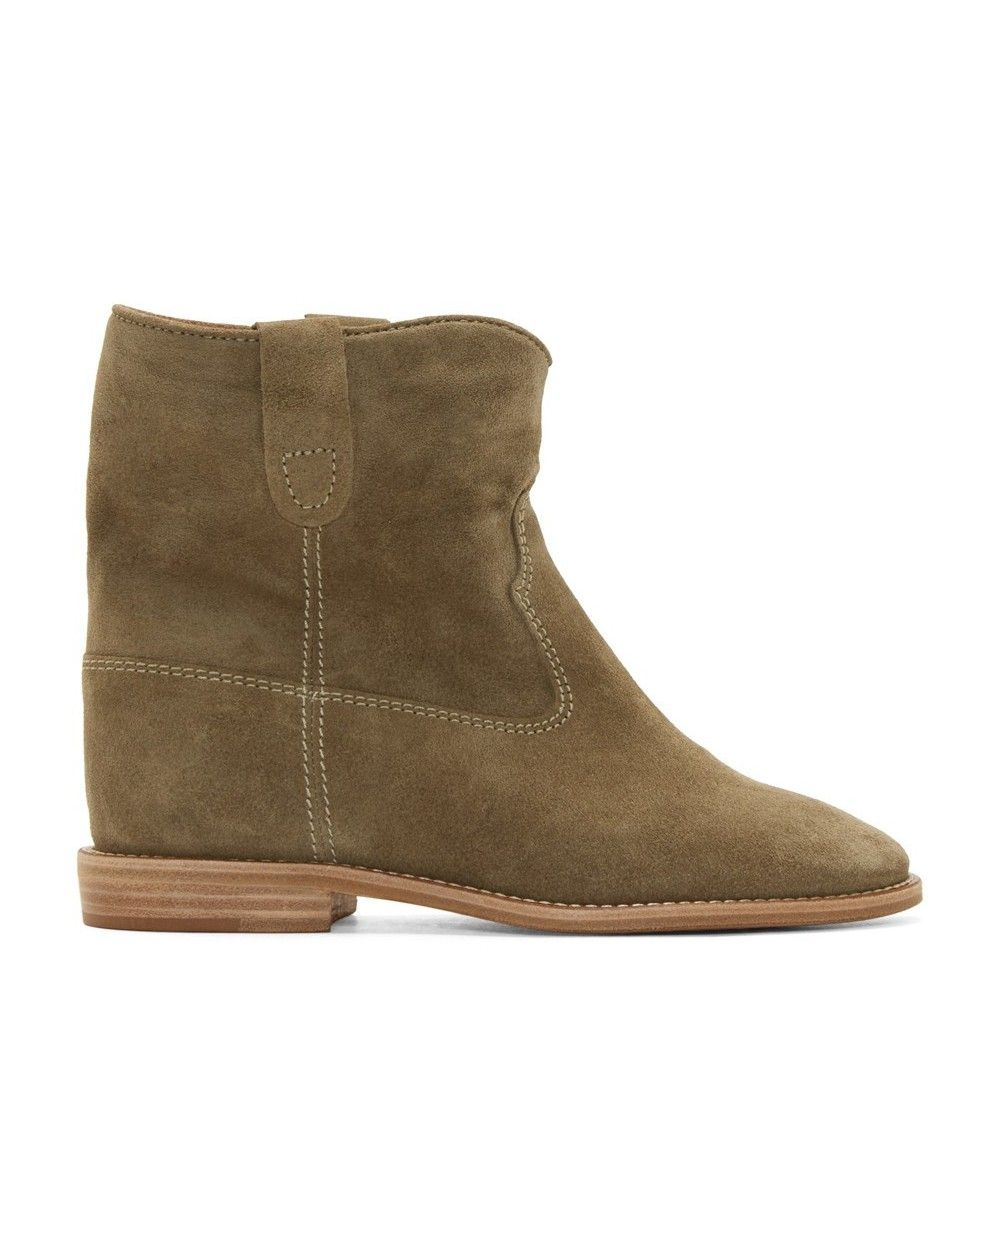 001368a336 Authentic Isabel Marant Etoile Suede Crisi Sneakers Boots Olive Sale Online